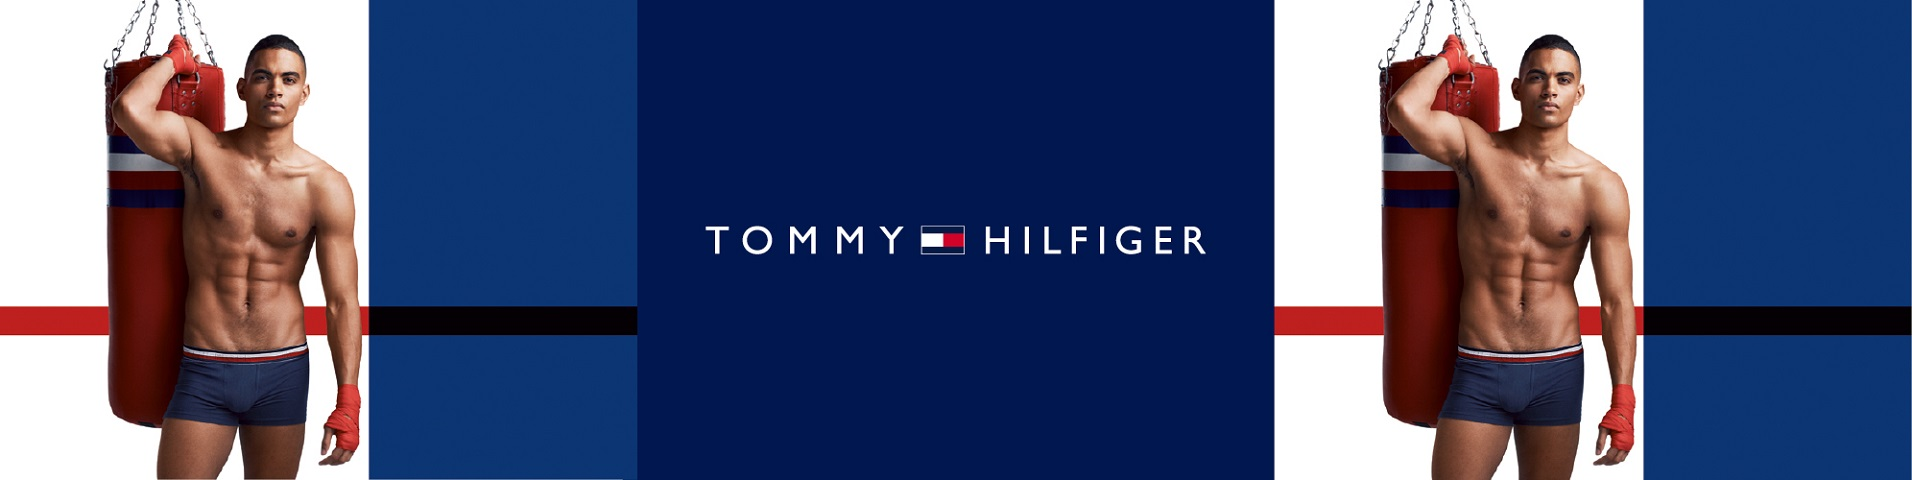 sous v tements homme tommy hilfiger tous les articles chez zalando. Black Bedroom Furniture Sets. Home Design Ideas